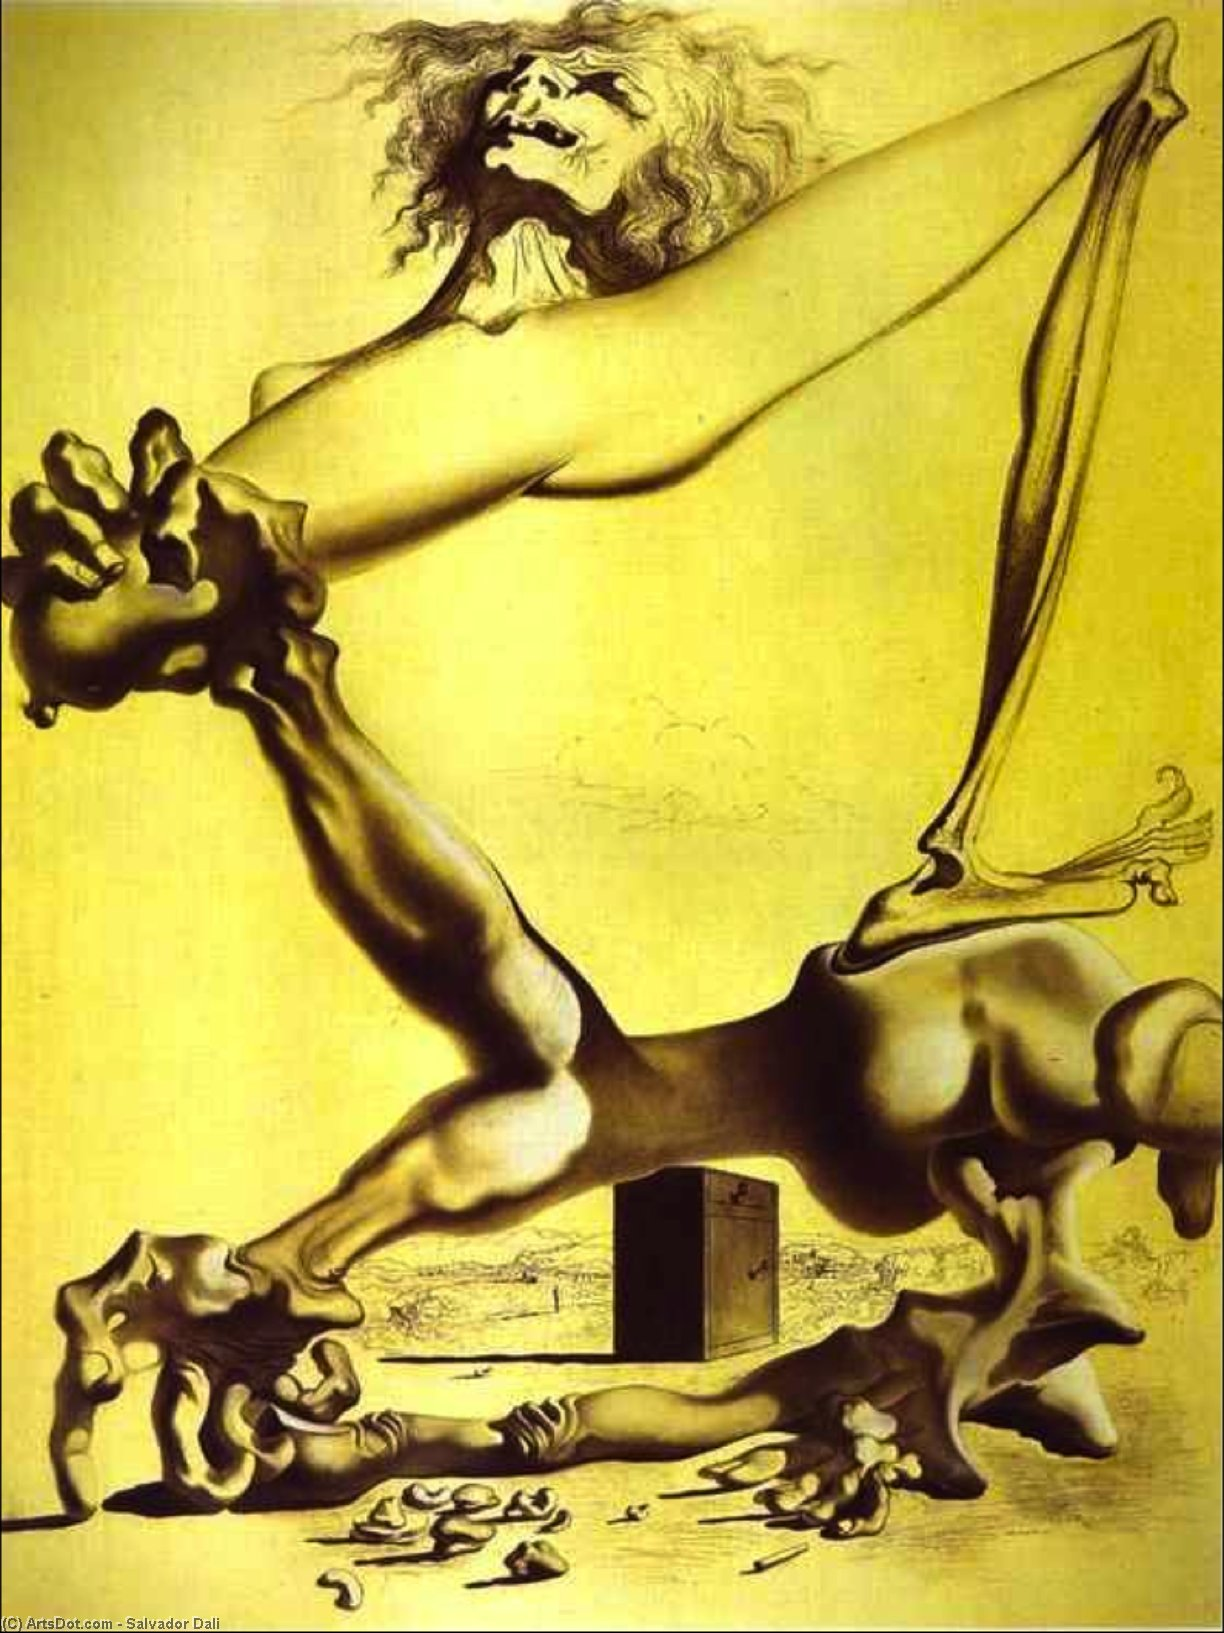 Wikioo.org - The Encyclopedia of Fine Arts - Painting, Artwork by Salvador Dali - Premonition of Civil War